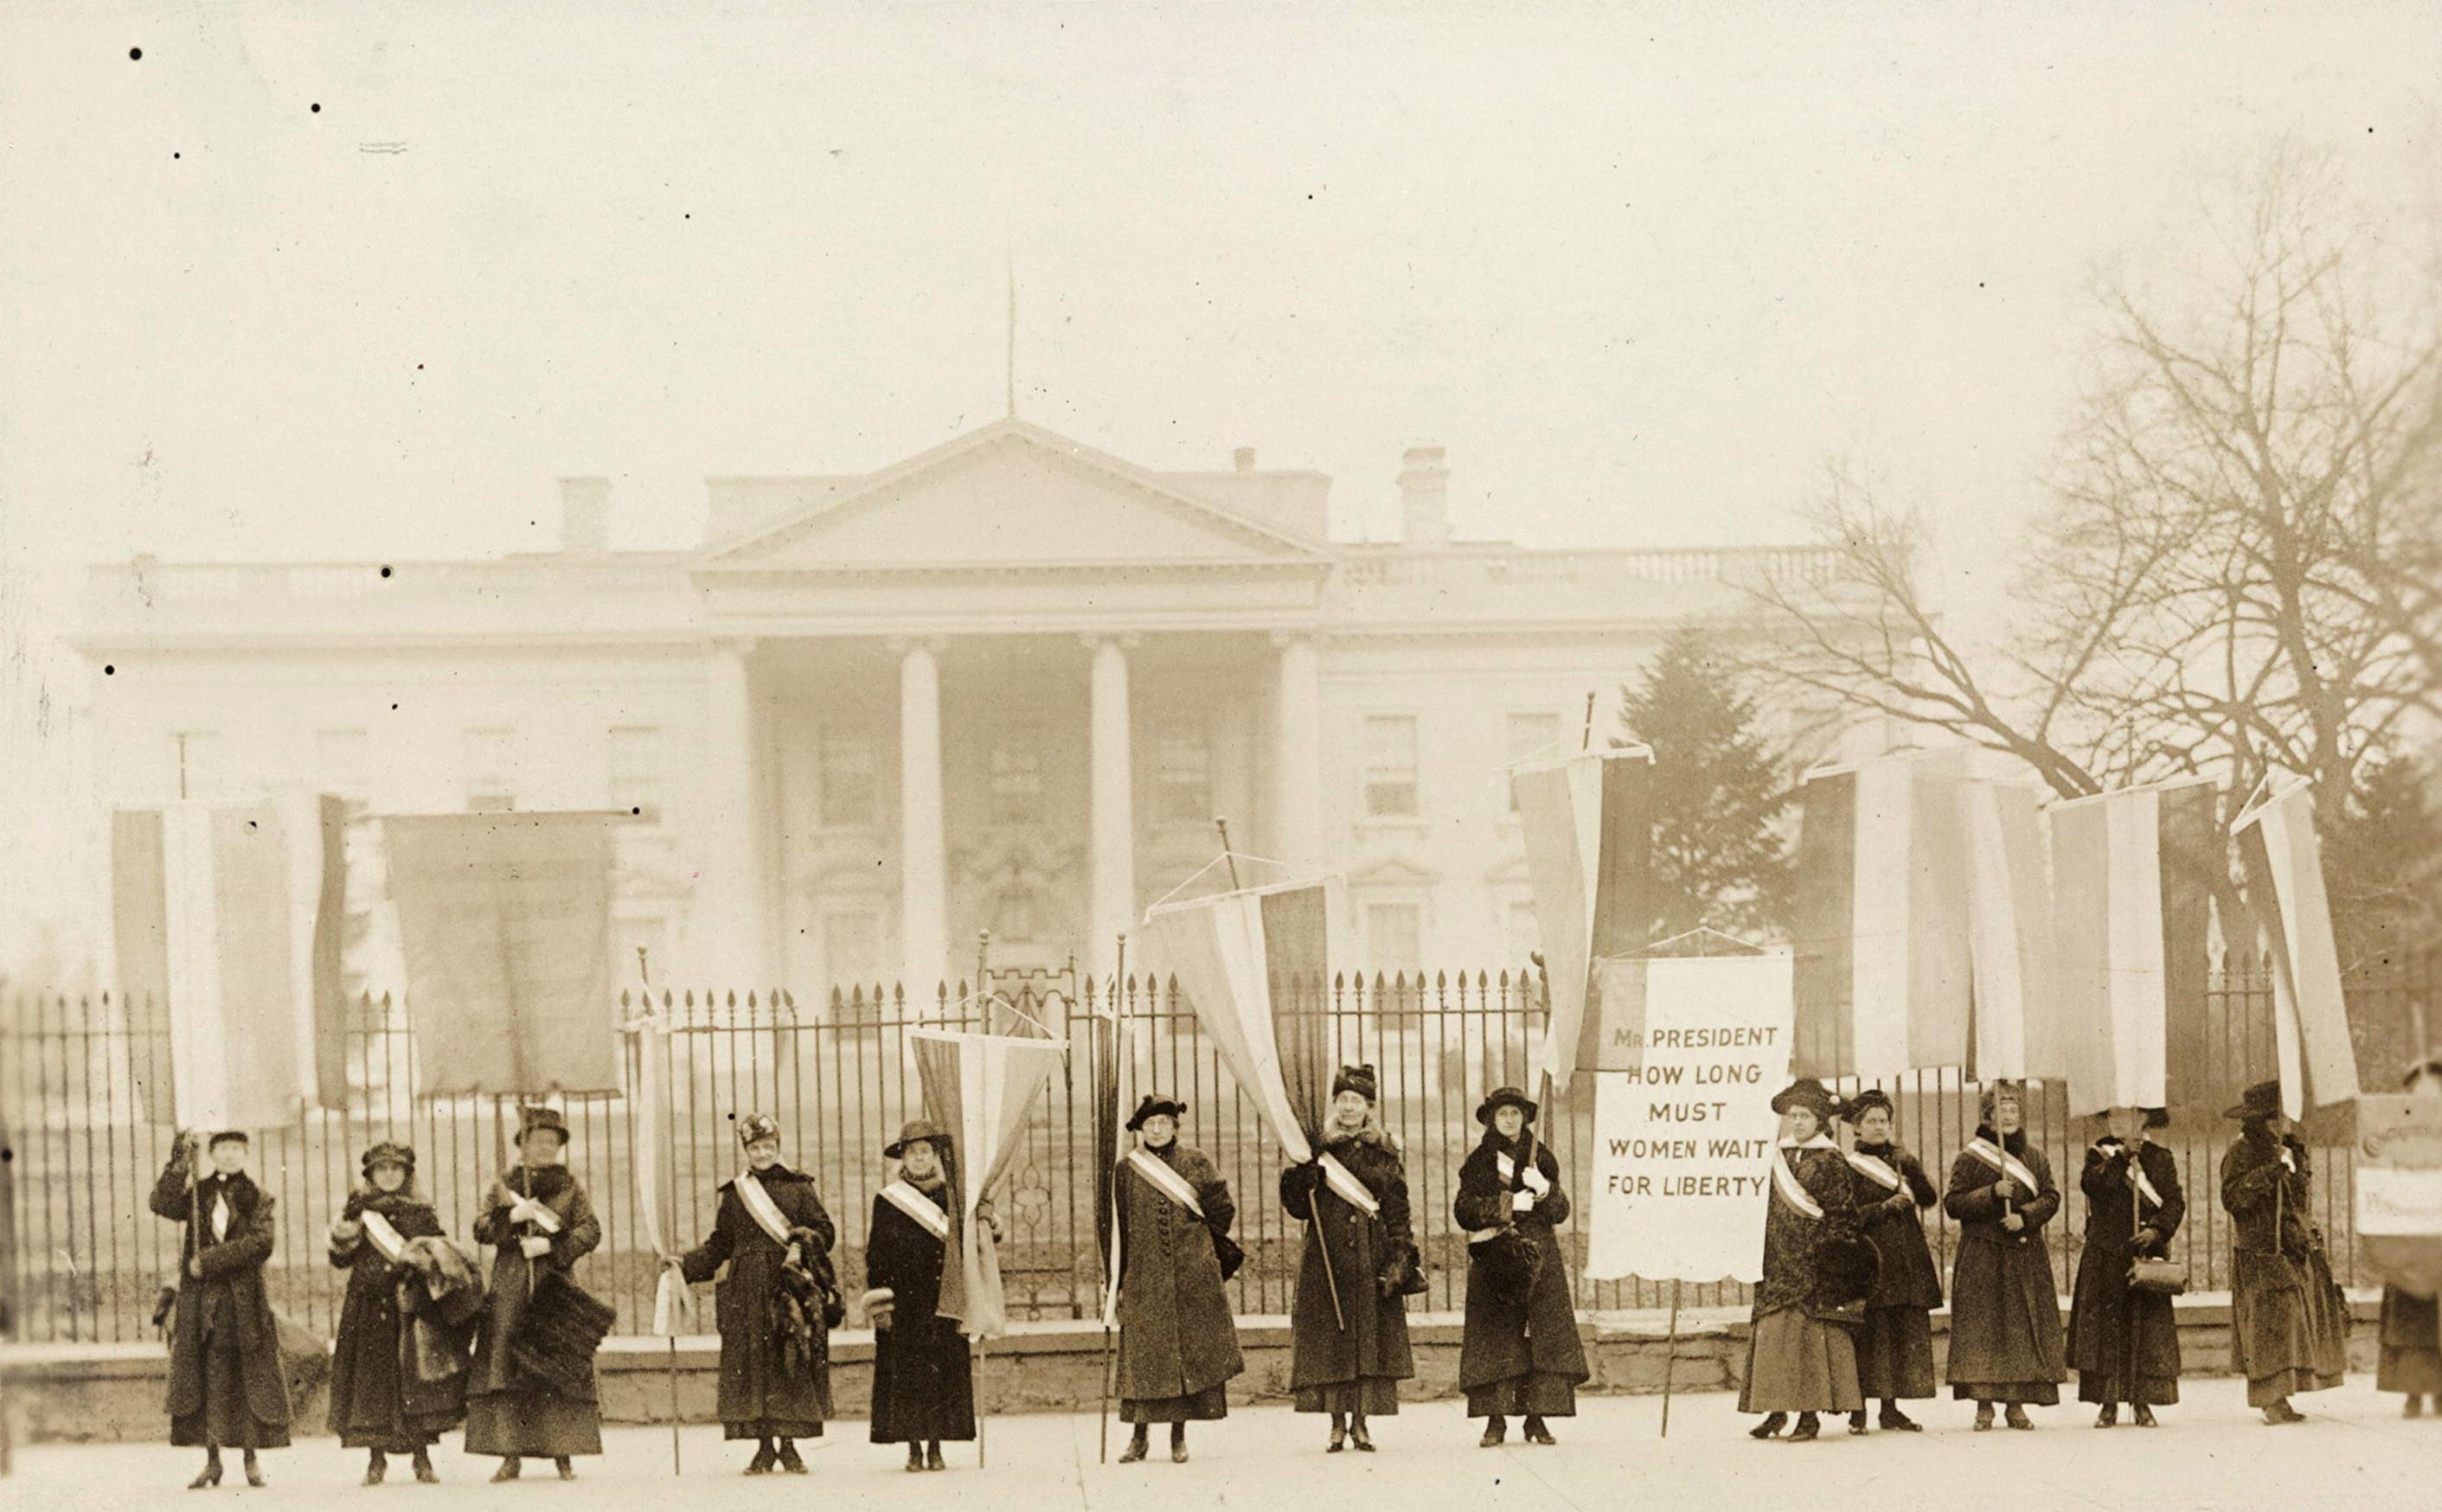 Protest in front of White House for Women's Suffrage